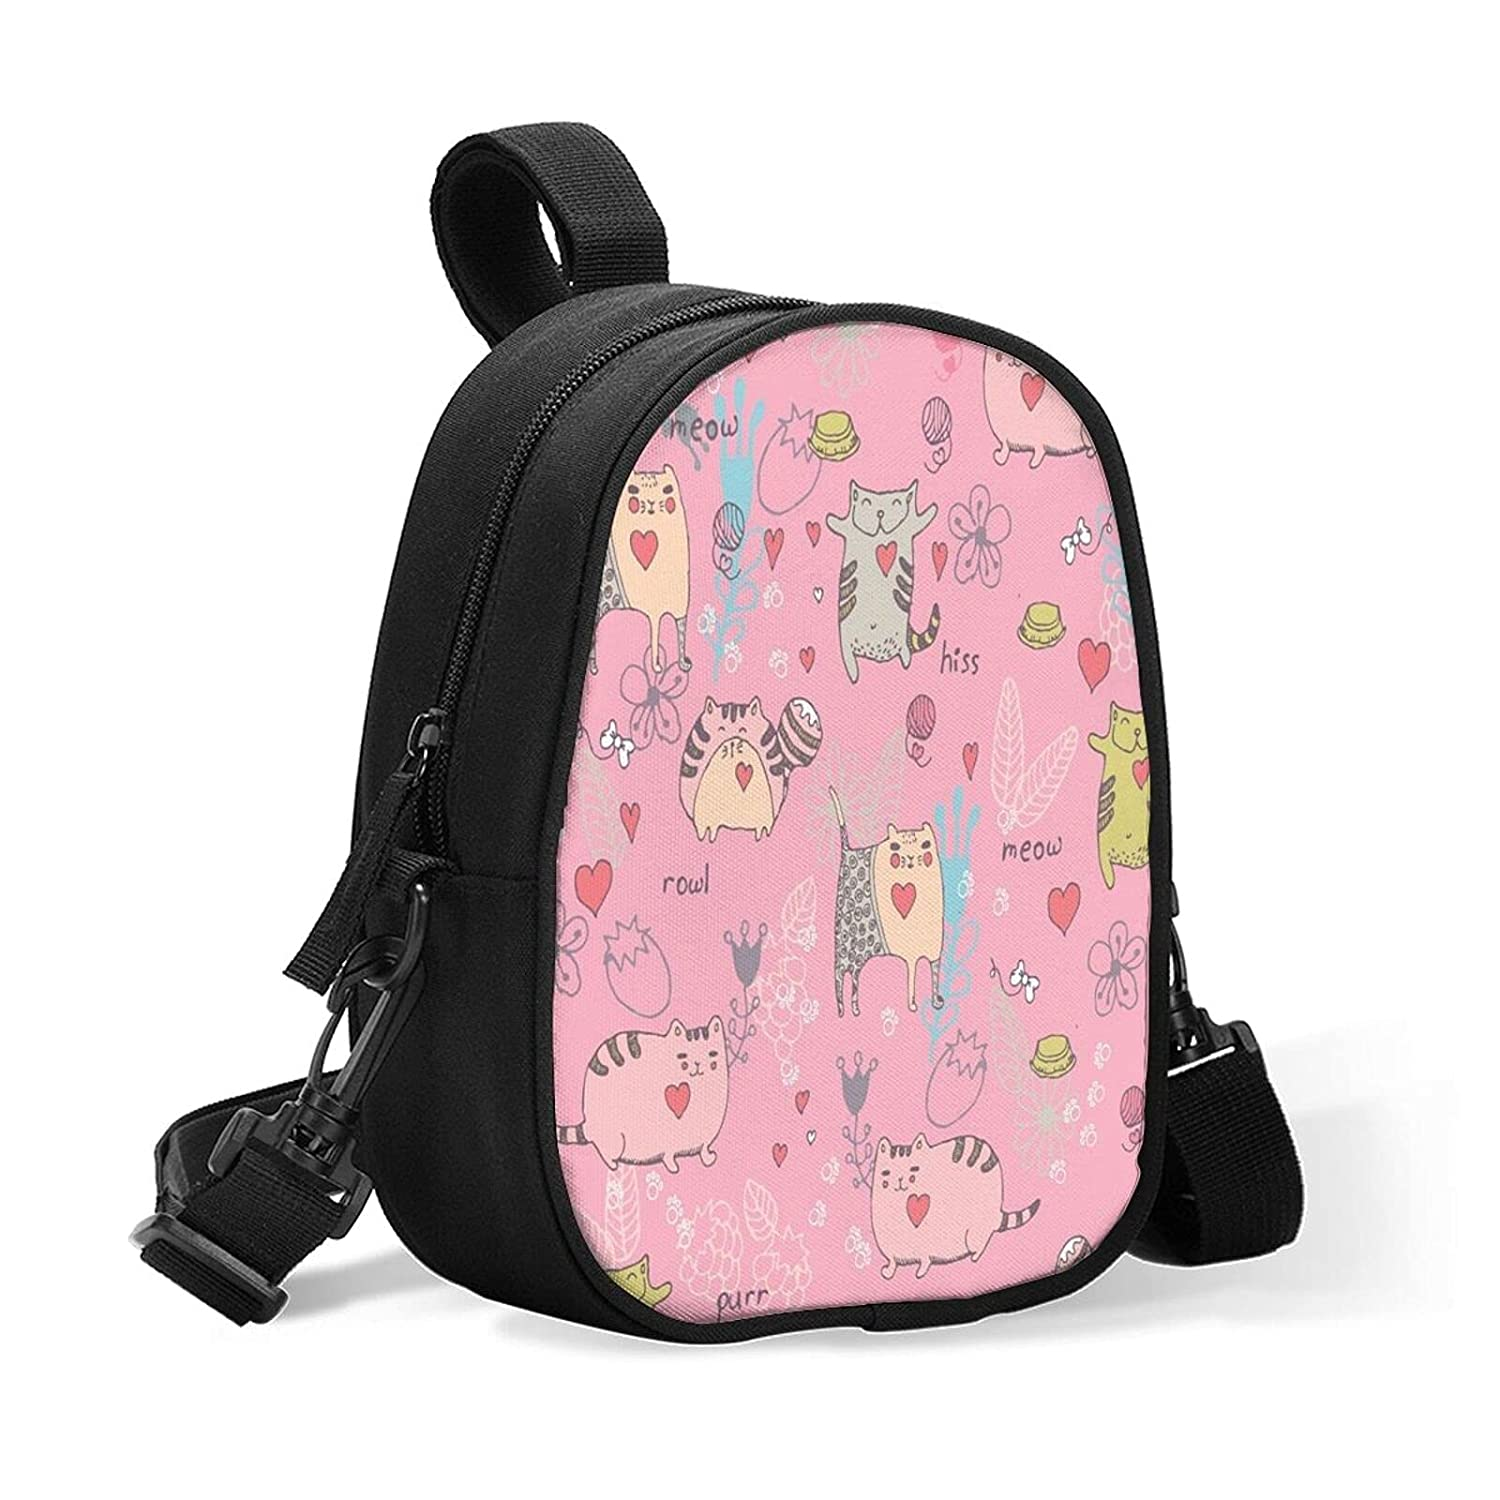 Cats Pattern Insulated Baby Bottle Daycare Upgrade Bag Size online shop for Overseas parallel import regular item